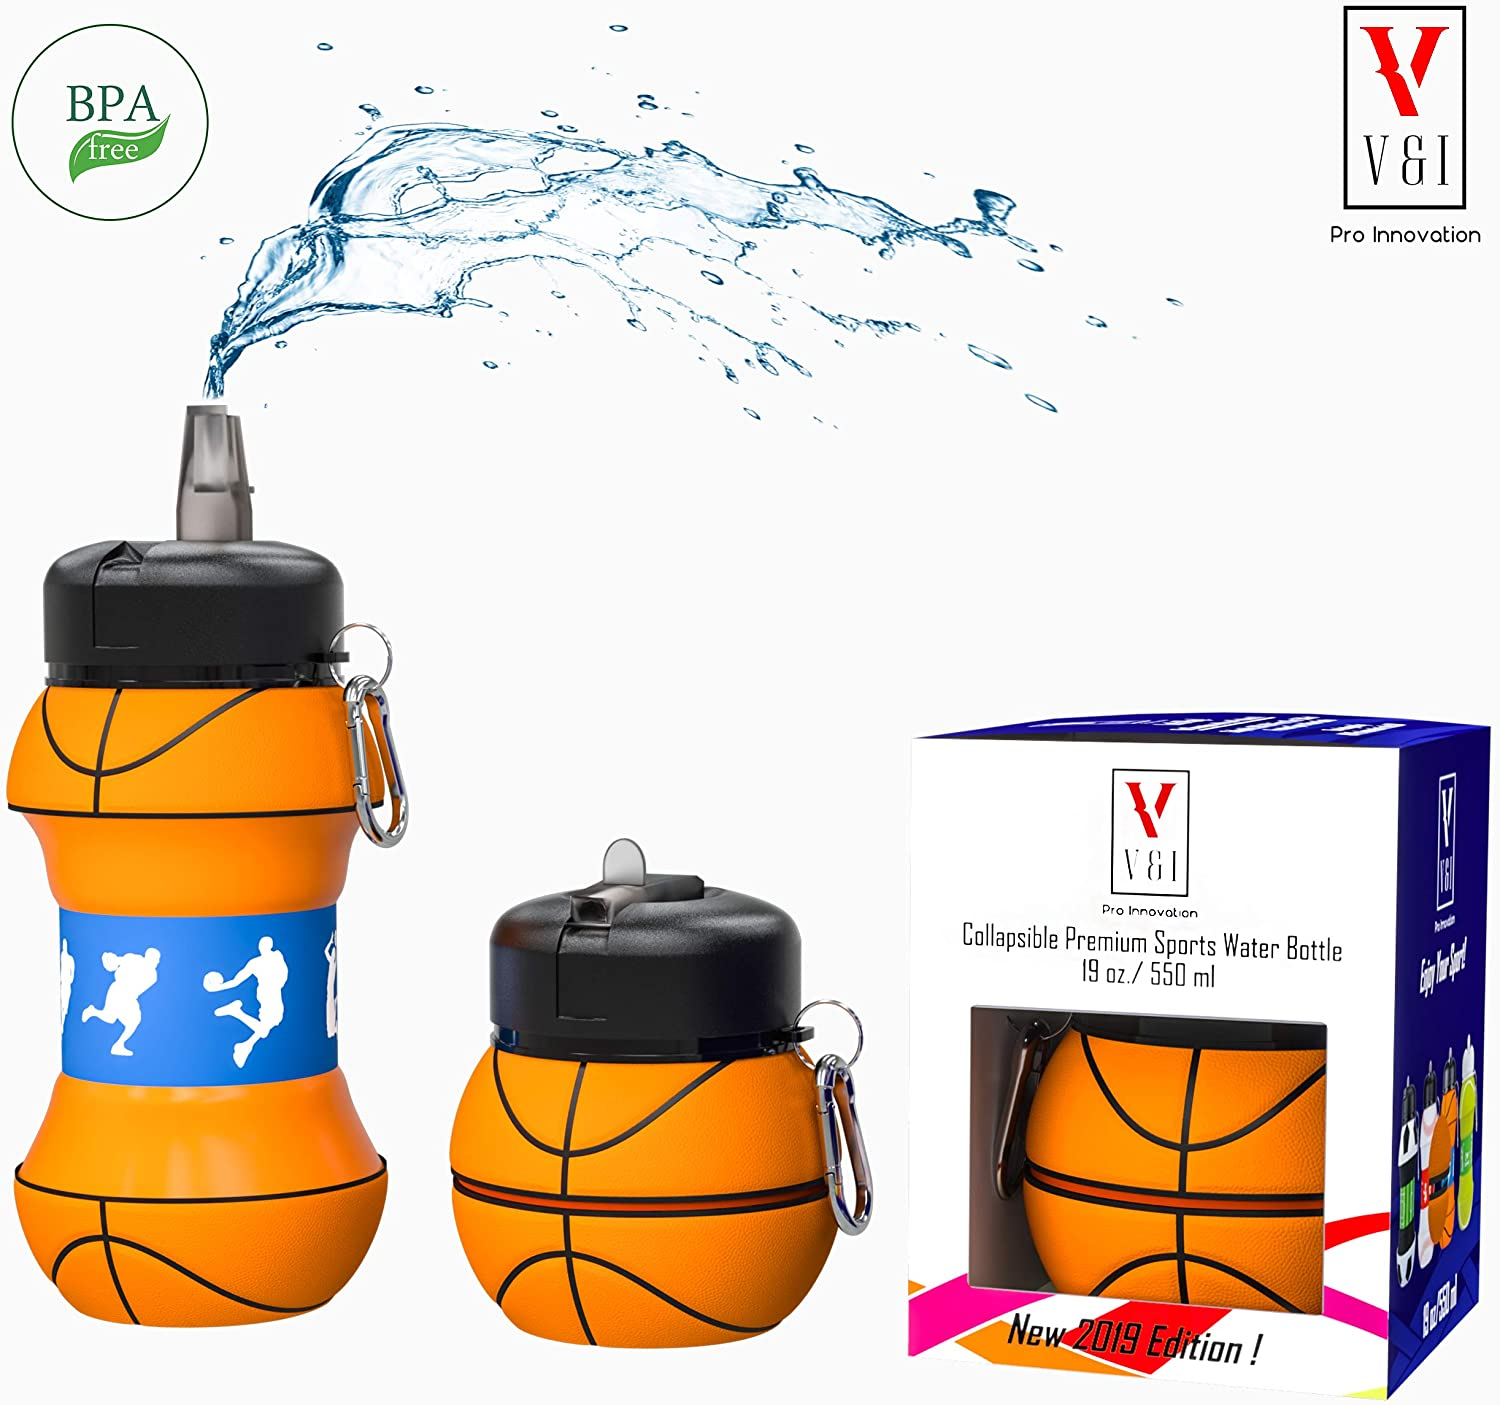 Kids Sports Water Bottle Collapsible Ball Shaped Drinking Cup Leak Proof School Lunch Mug Shockproof Squeezable Basketball Baseball Tennis Soccer Golf Volleyball Team Foldable Travel Jug Gift Idea